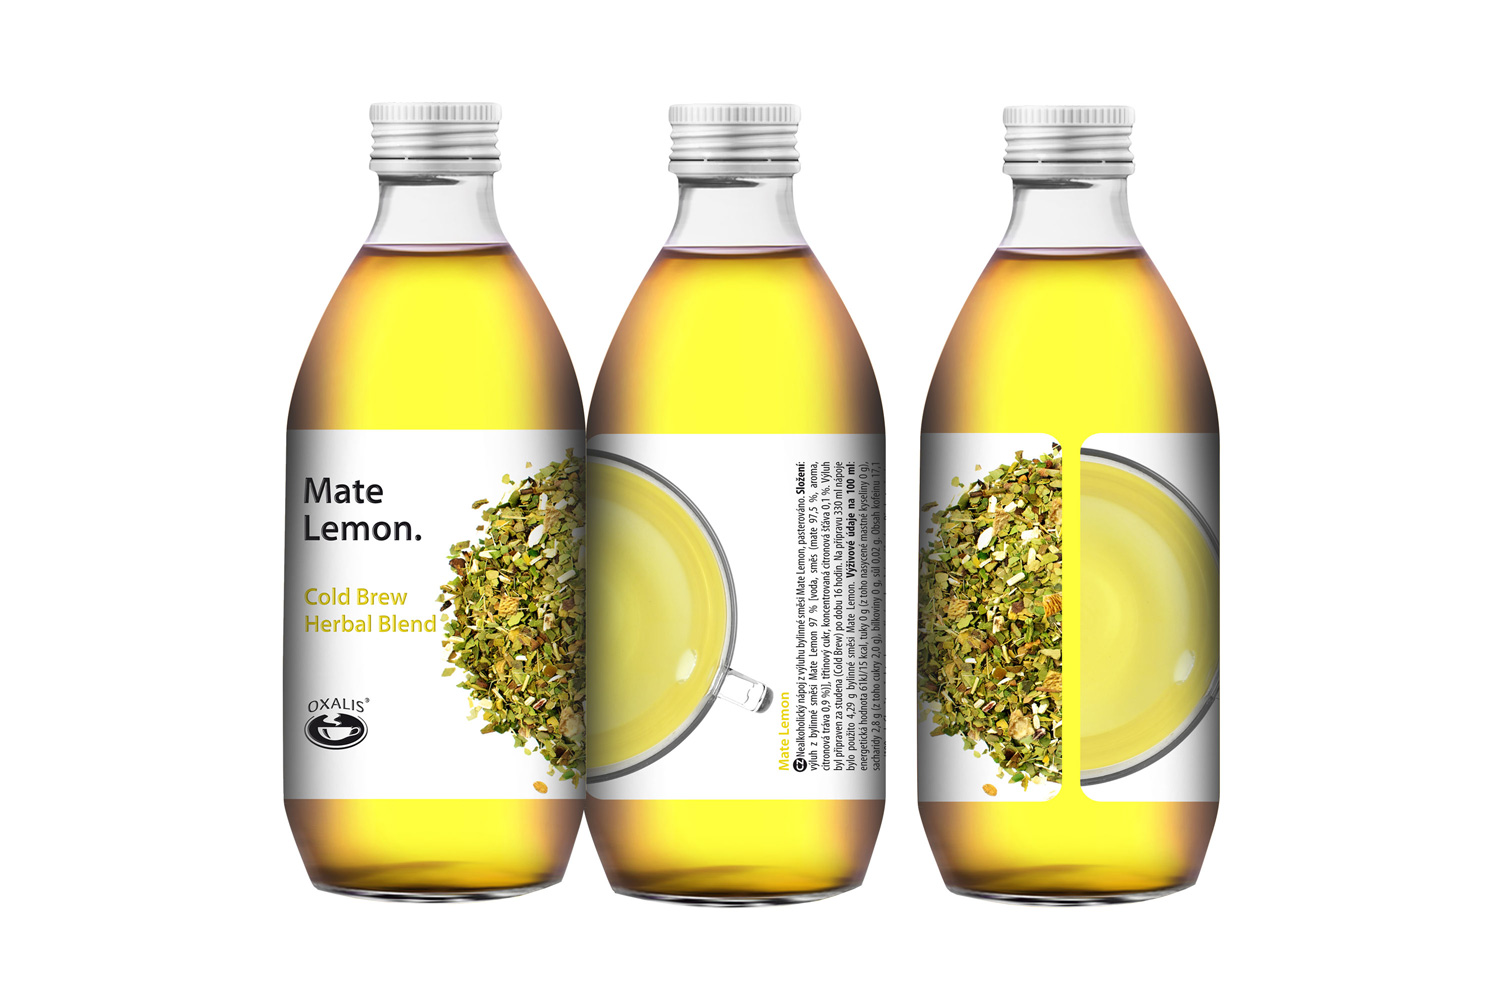 Mate Lemon - Cold Brew Herbal Blend 330ml